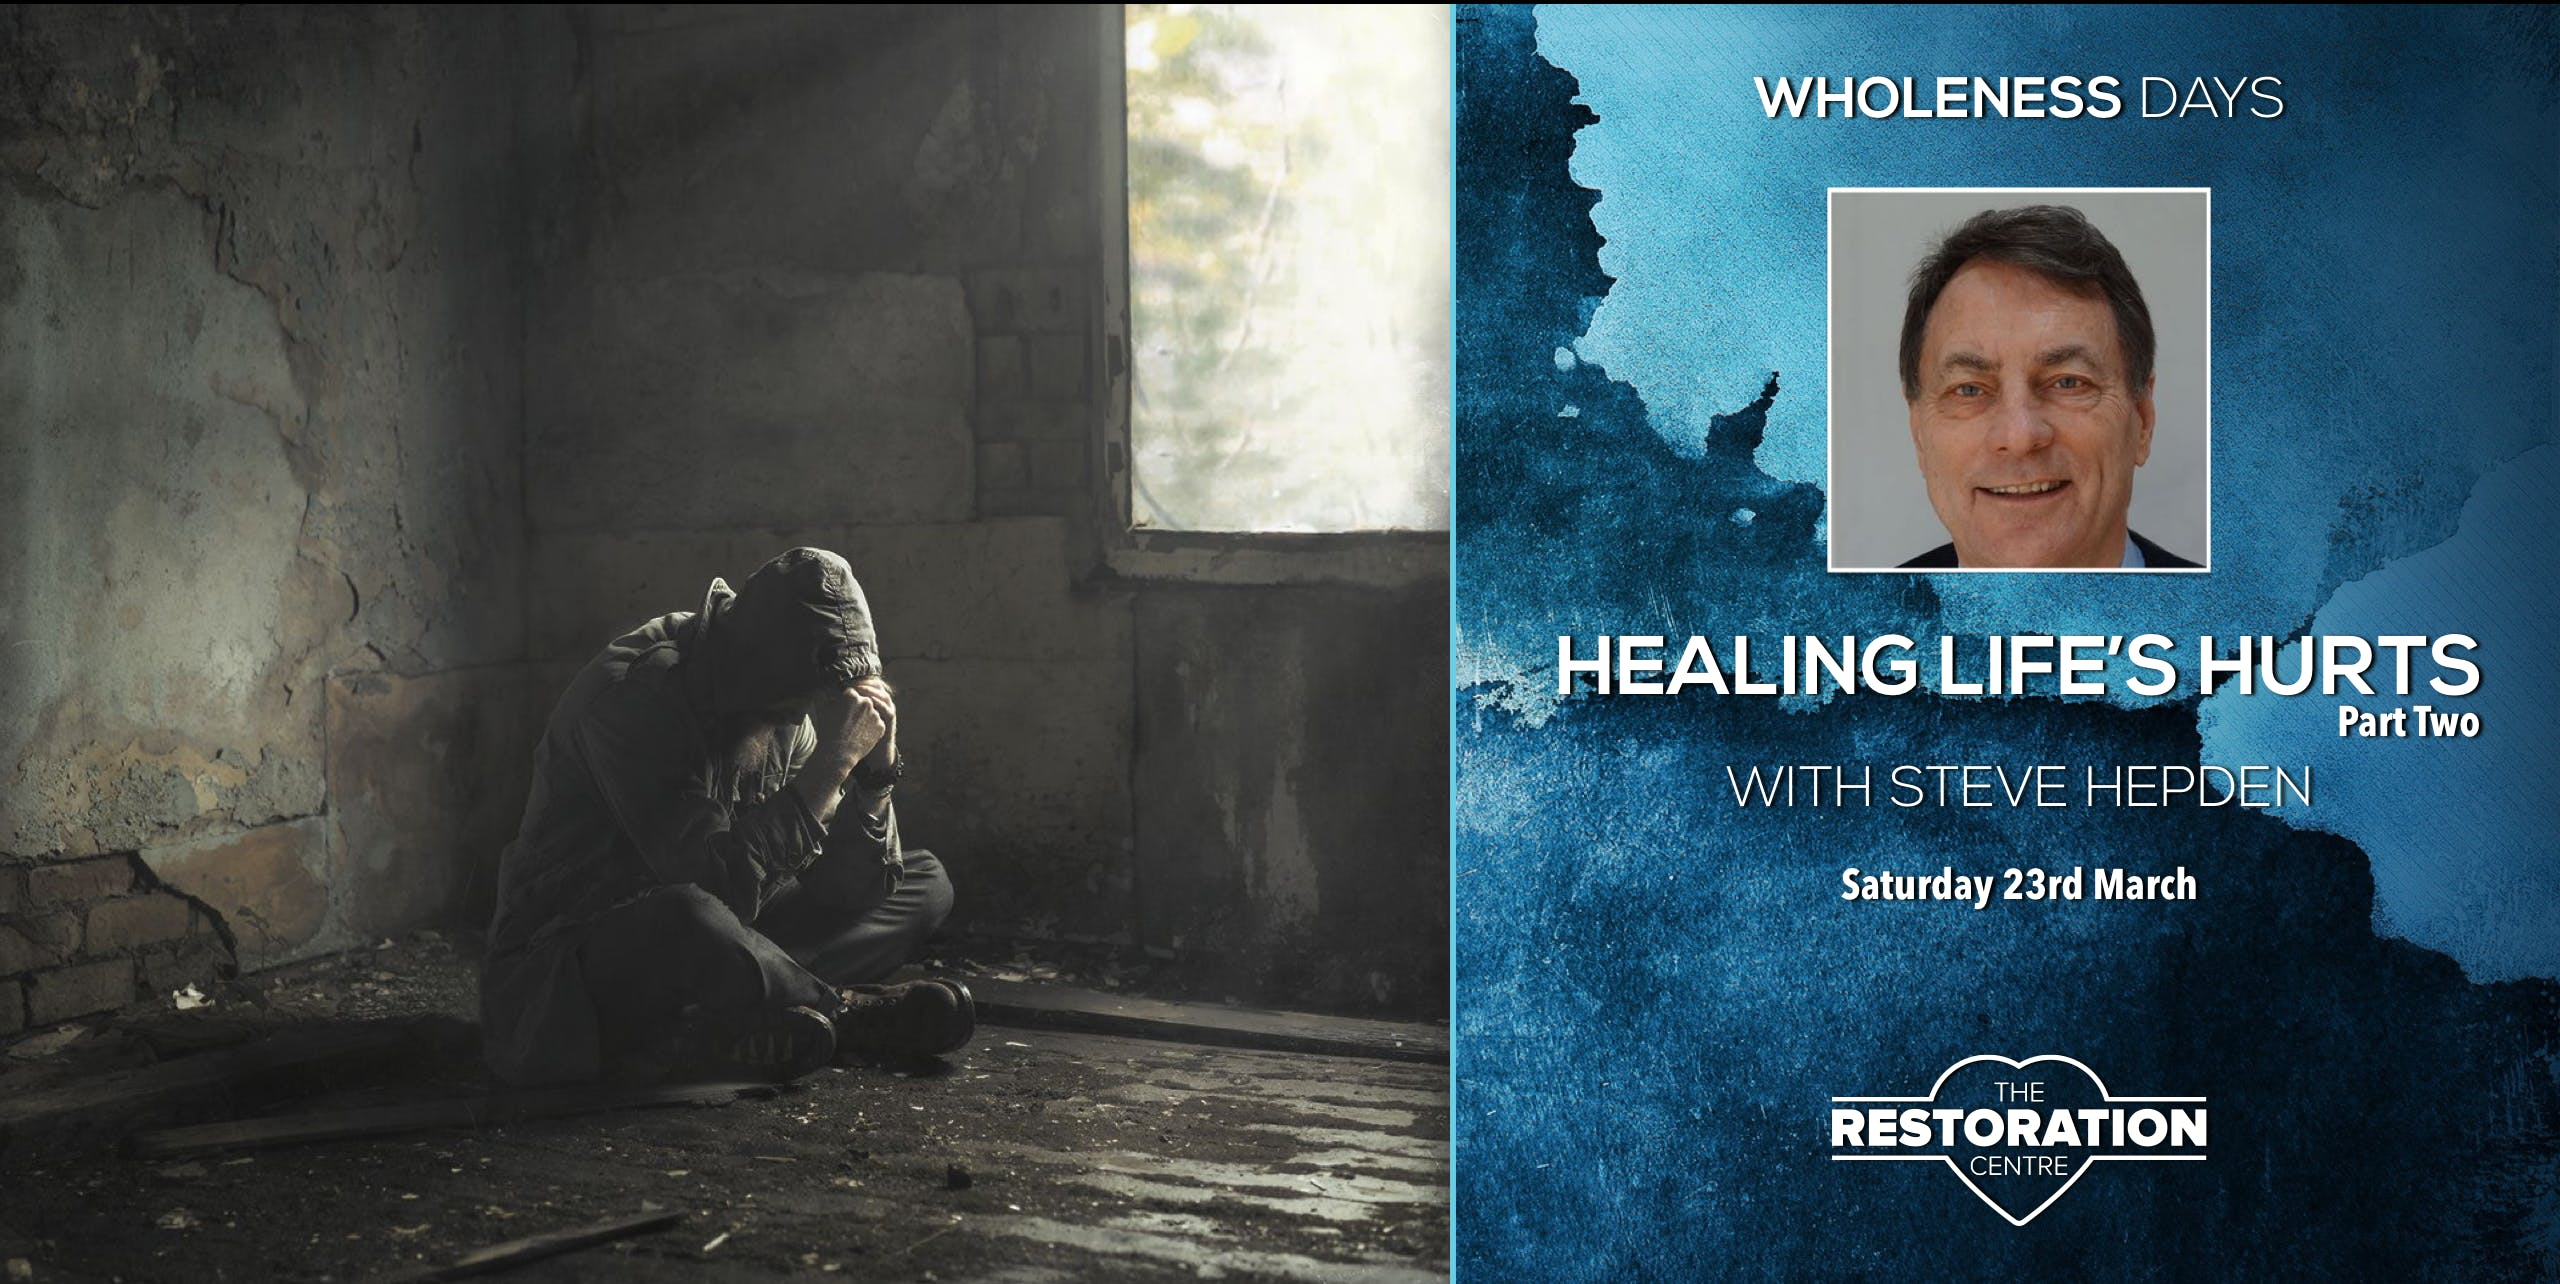 Healing Life's Hurts: Part Two with Steve Hep